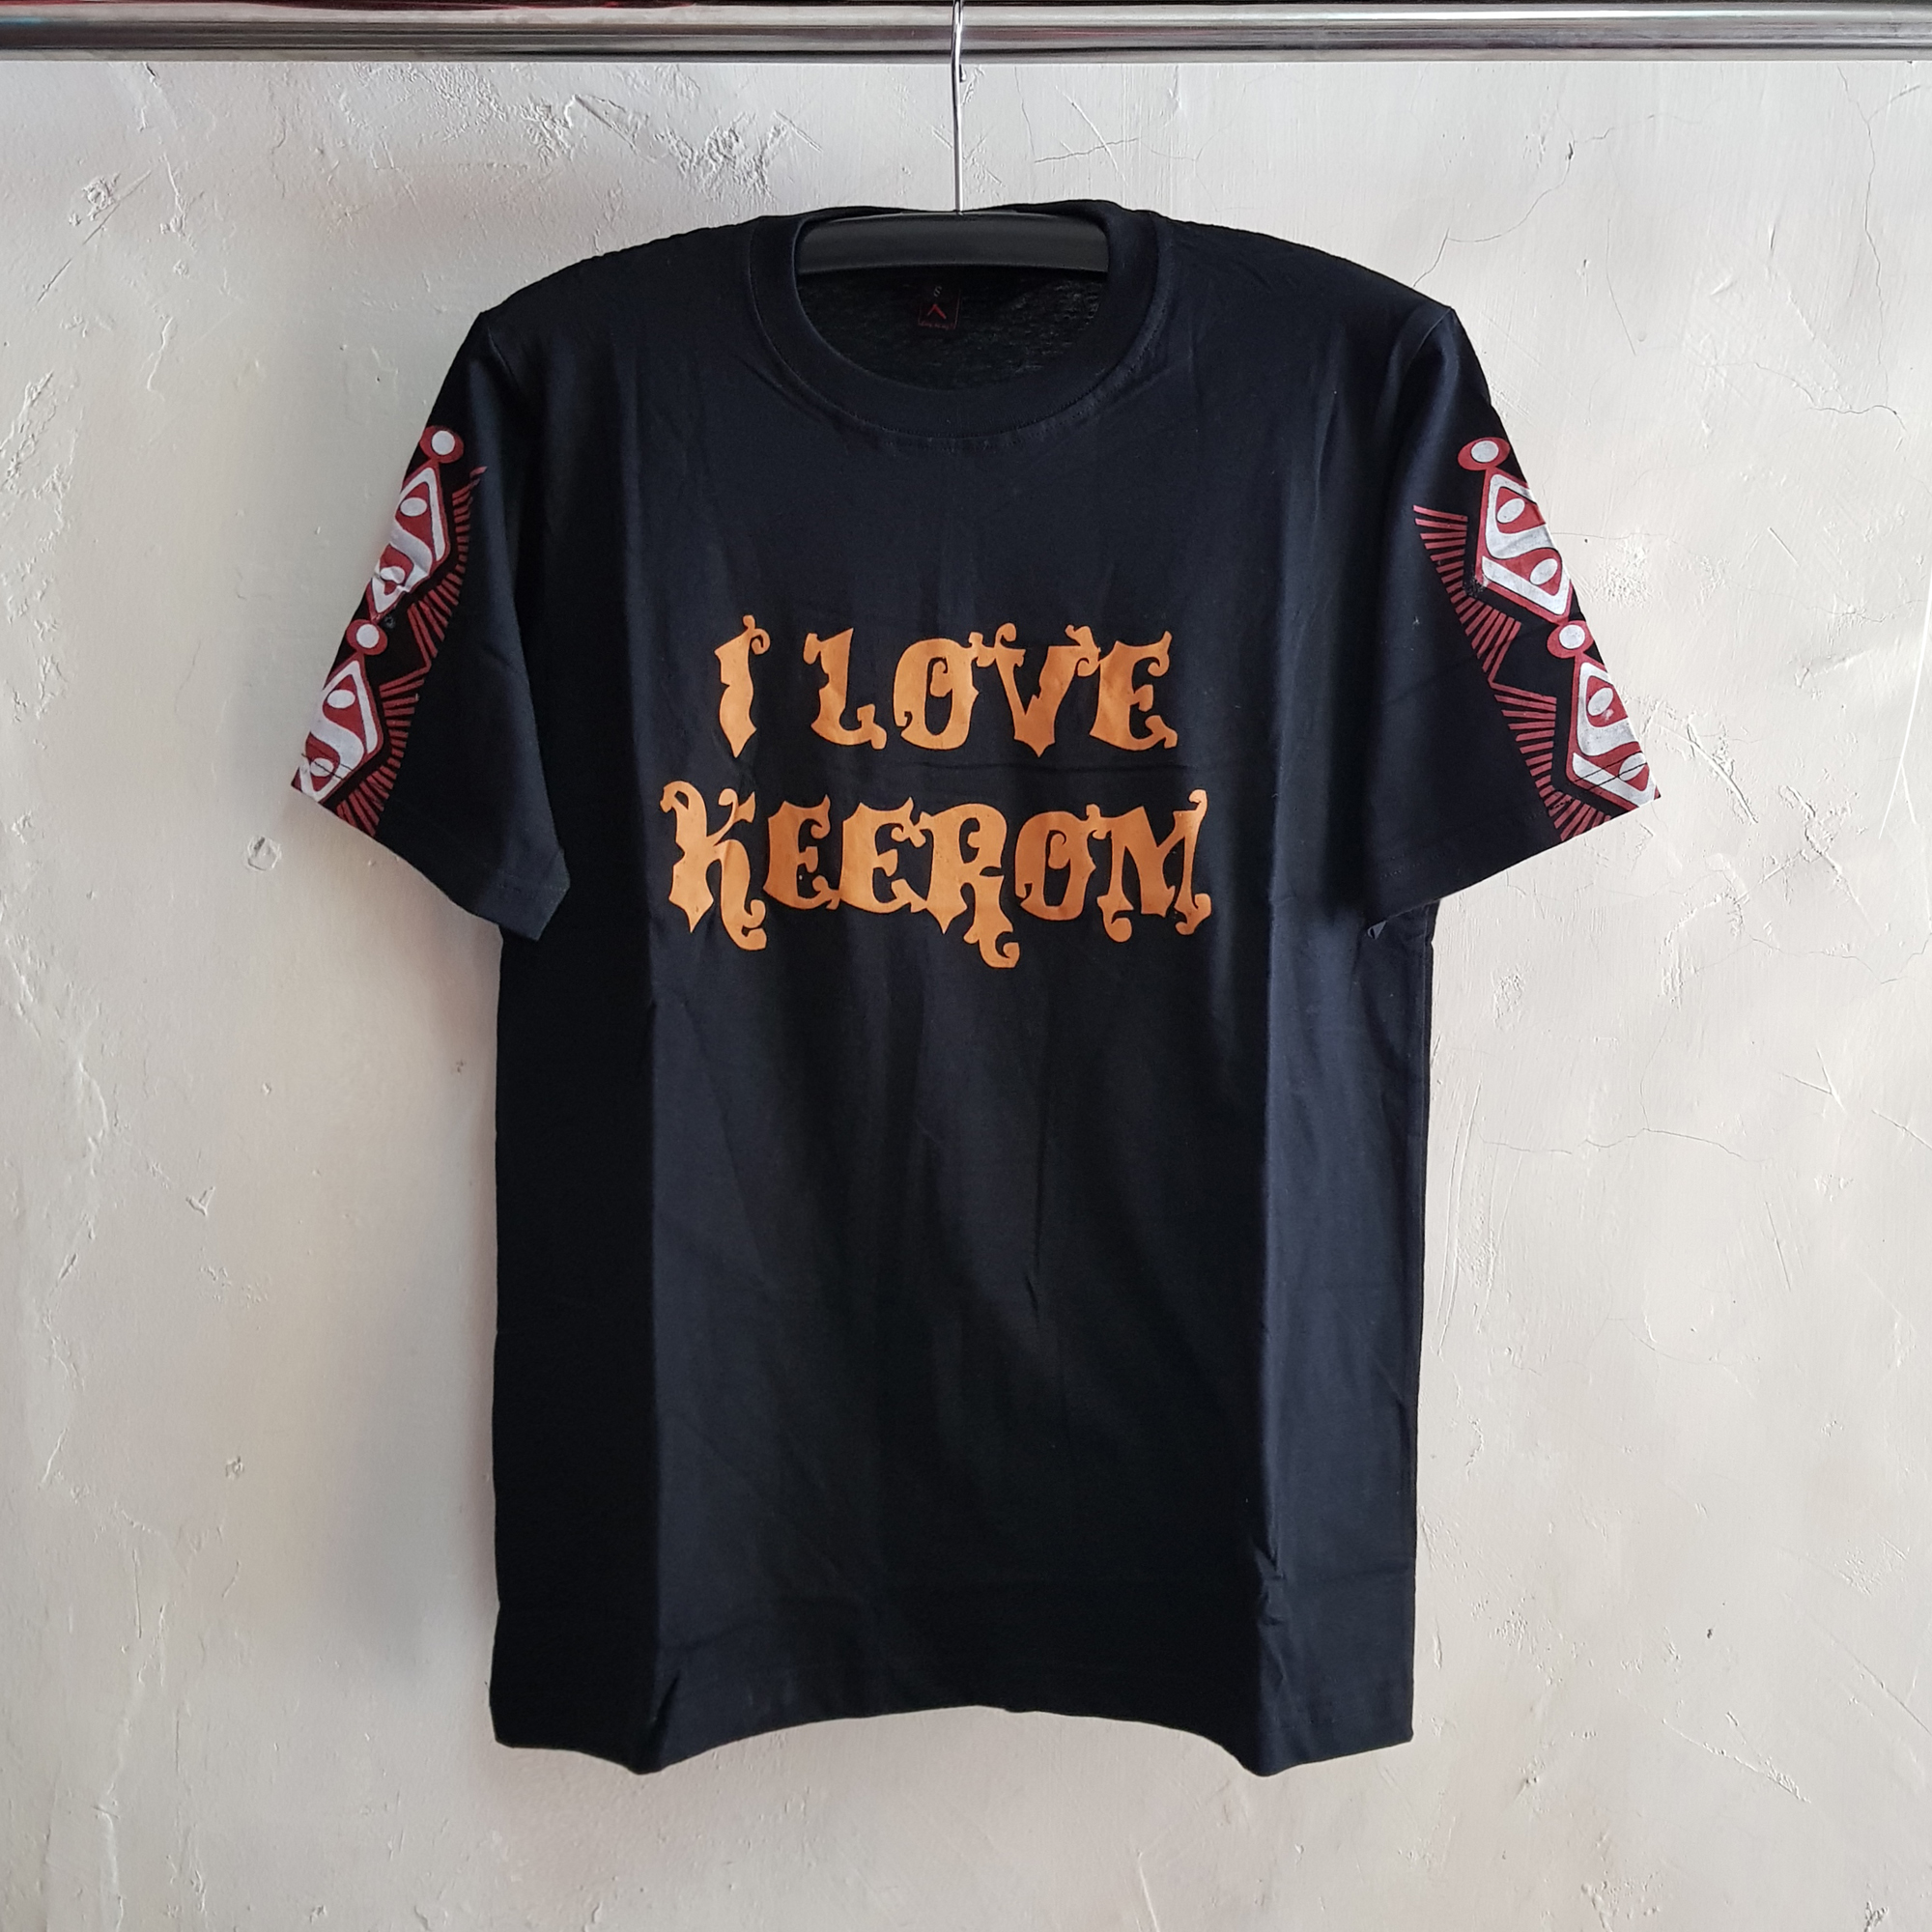 Seragam Oblong Arso 2, Kaos Cotton Combad